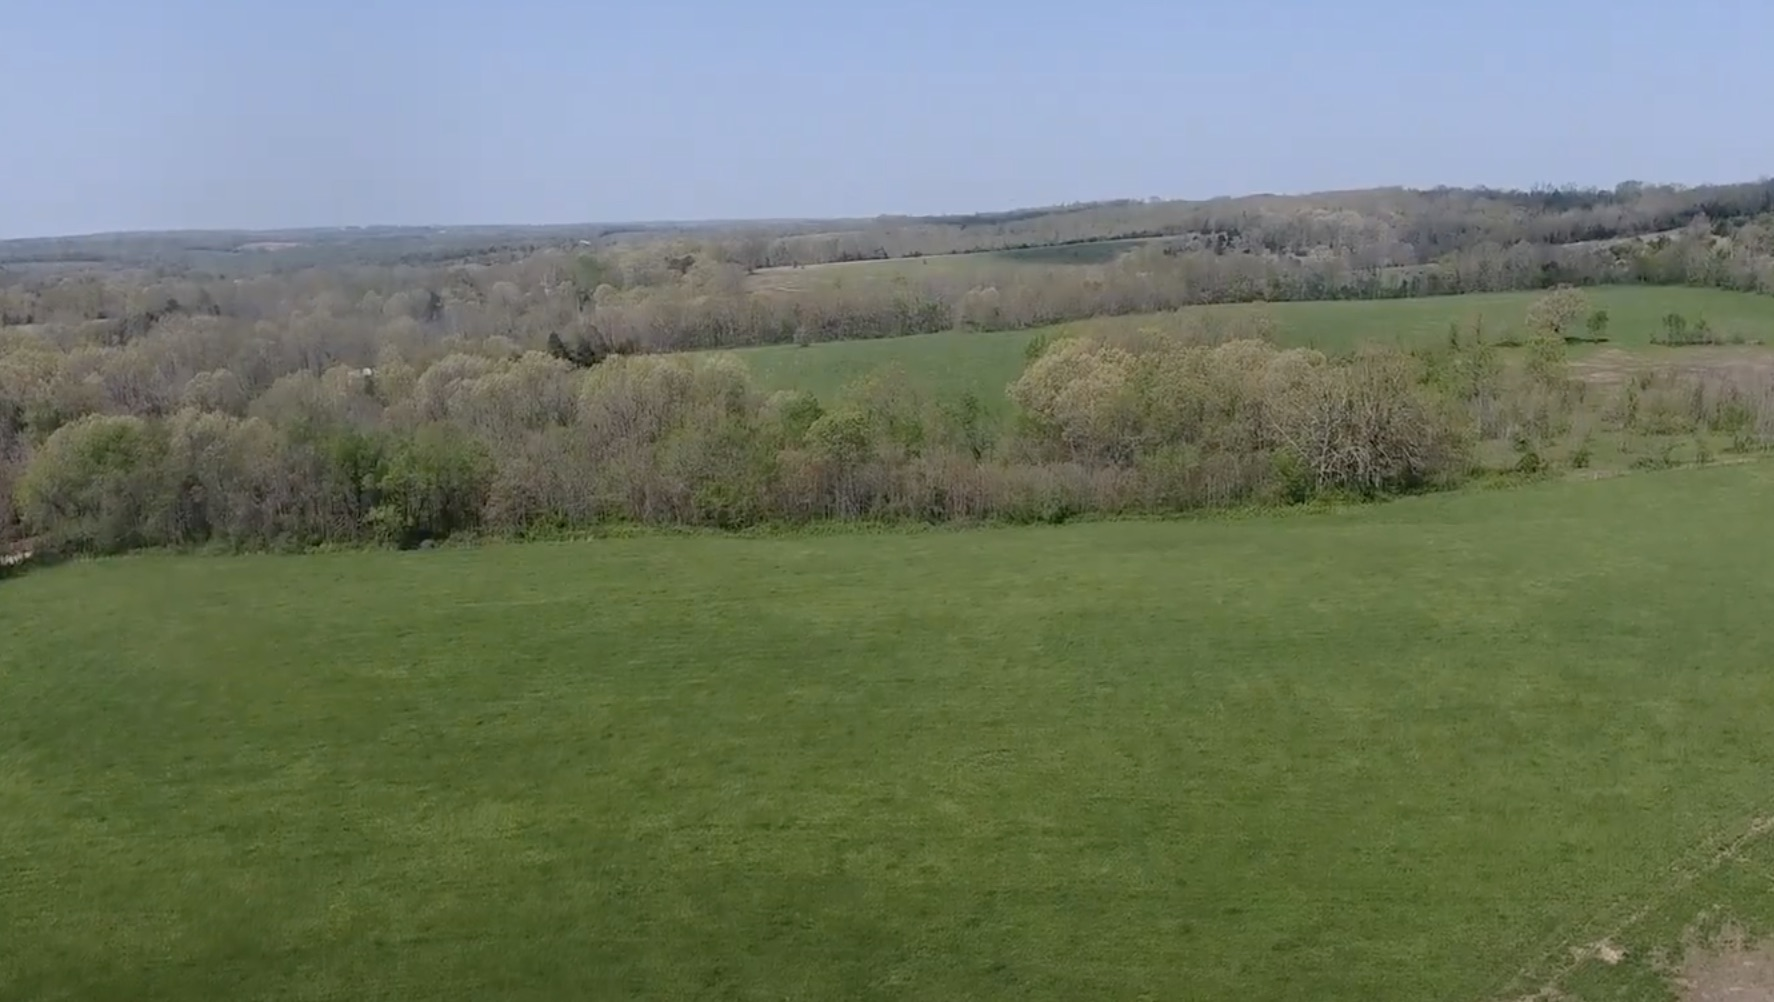 Southern Missouri Ozarks Ranch for Sale